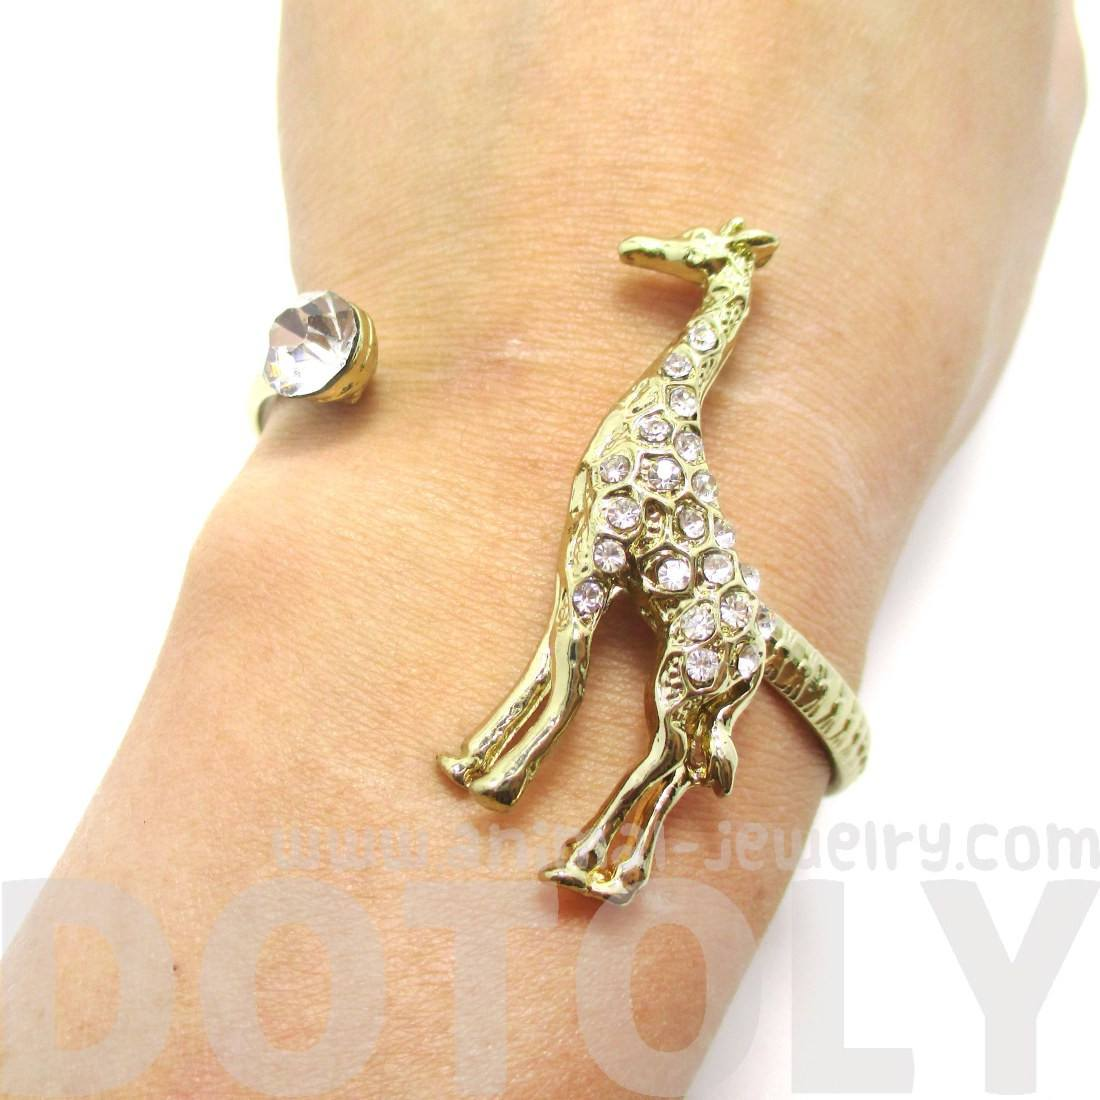 Giraffe Around Your Wrist Bangle Cuff Bracelet in Gold